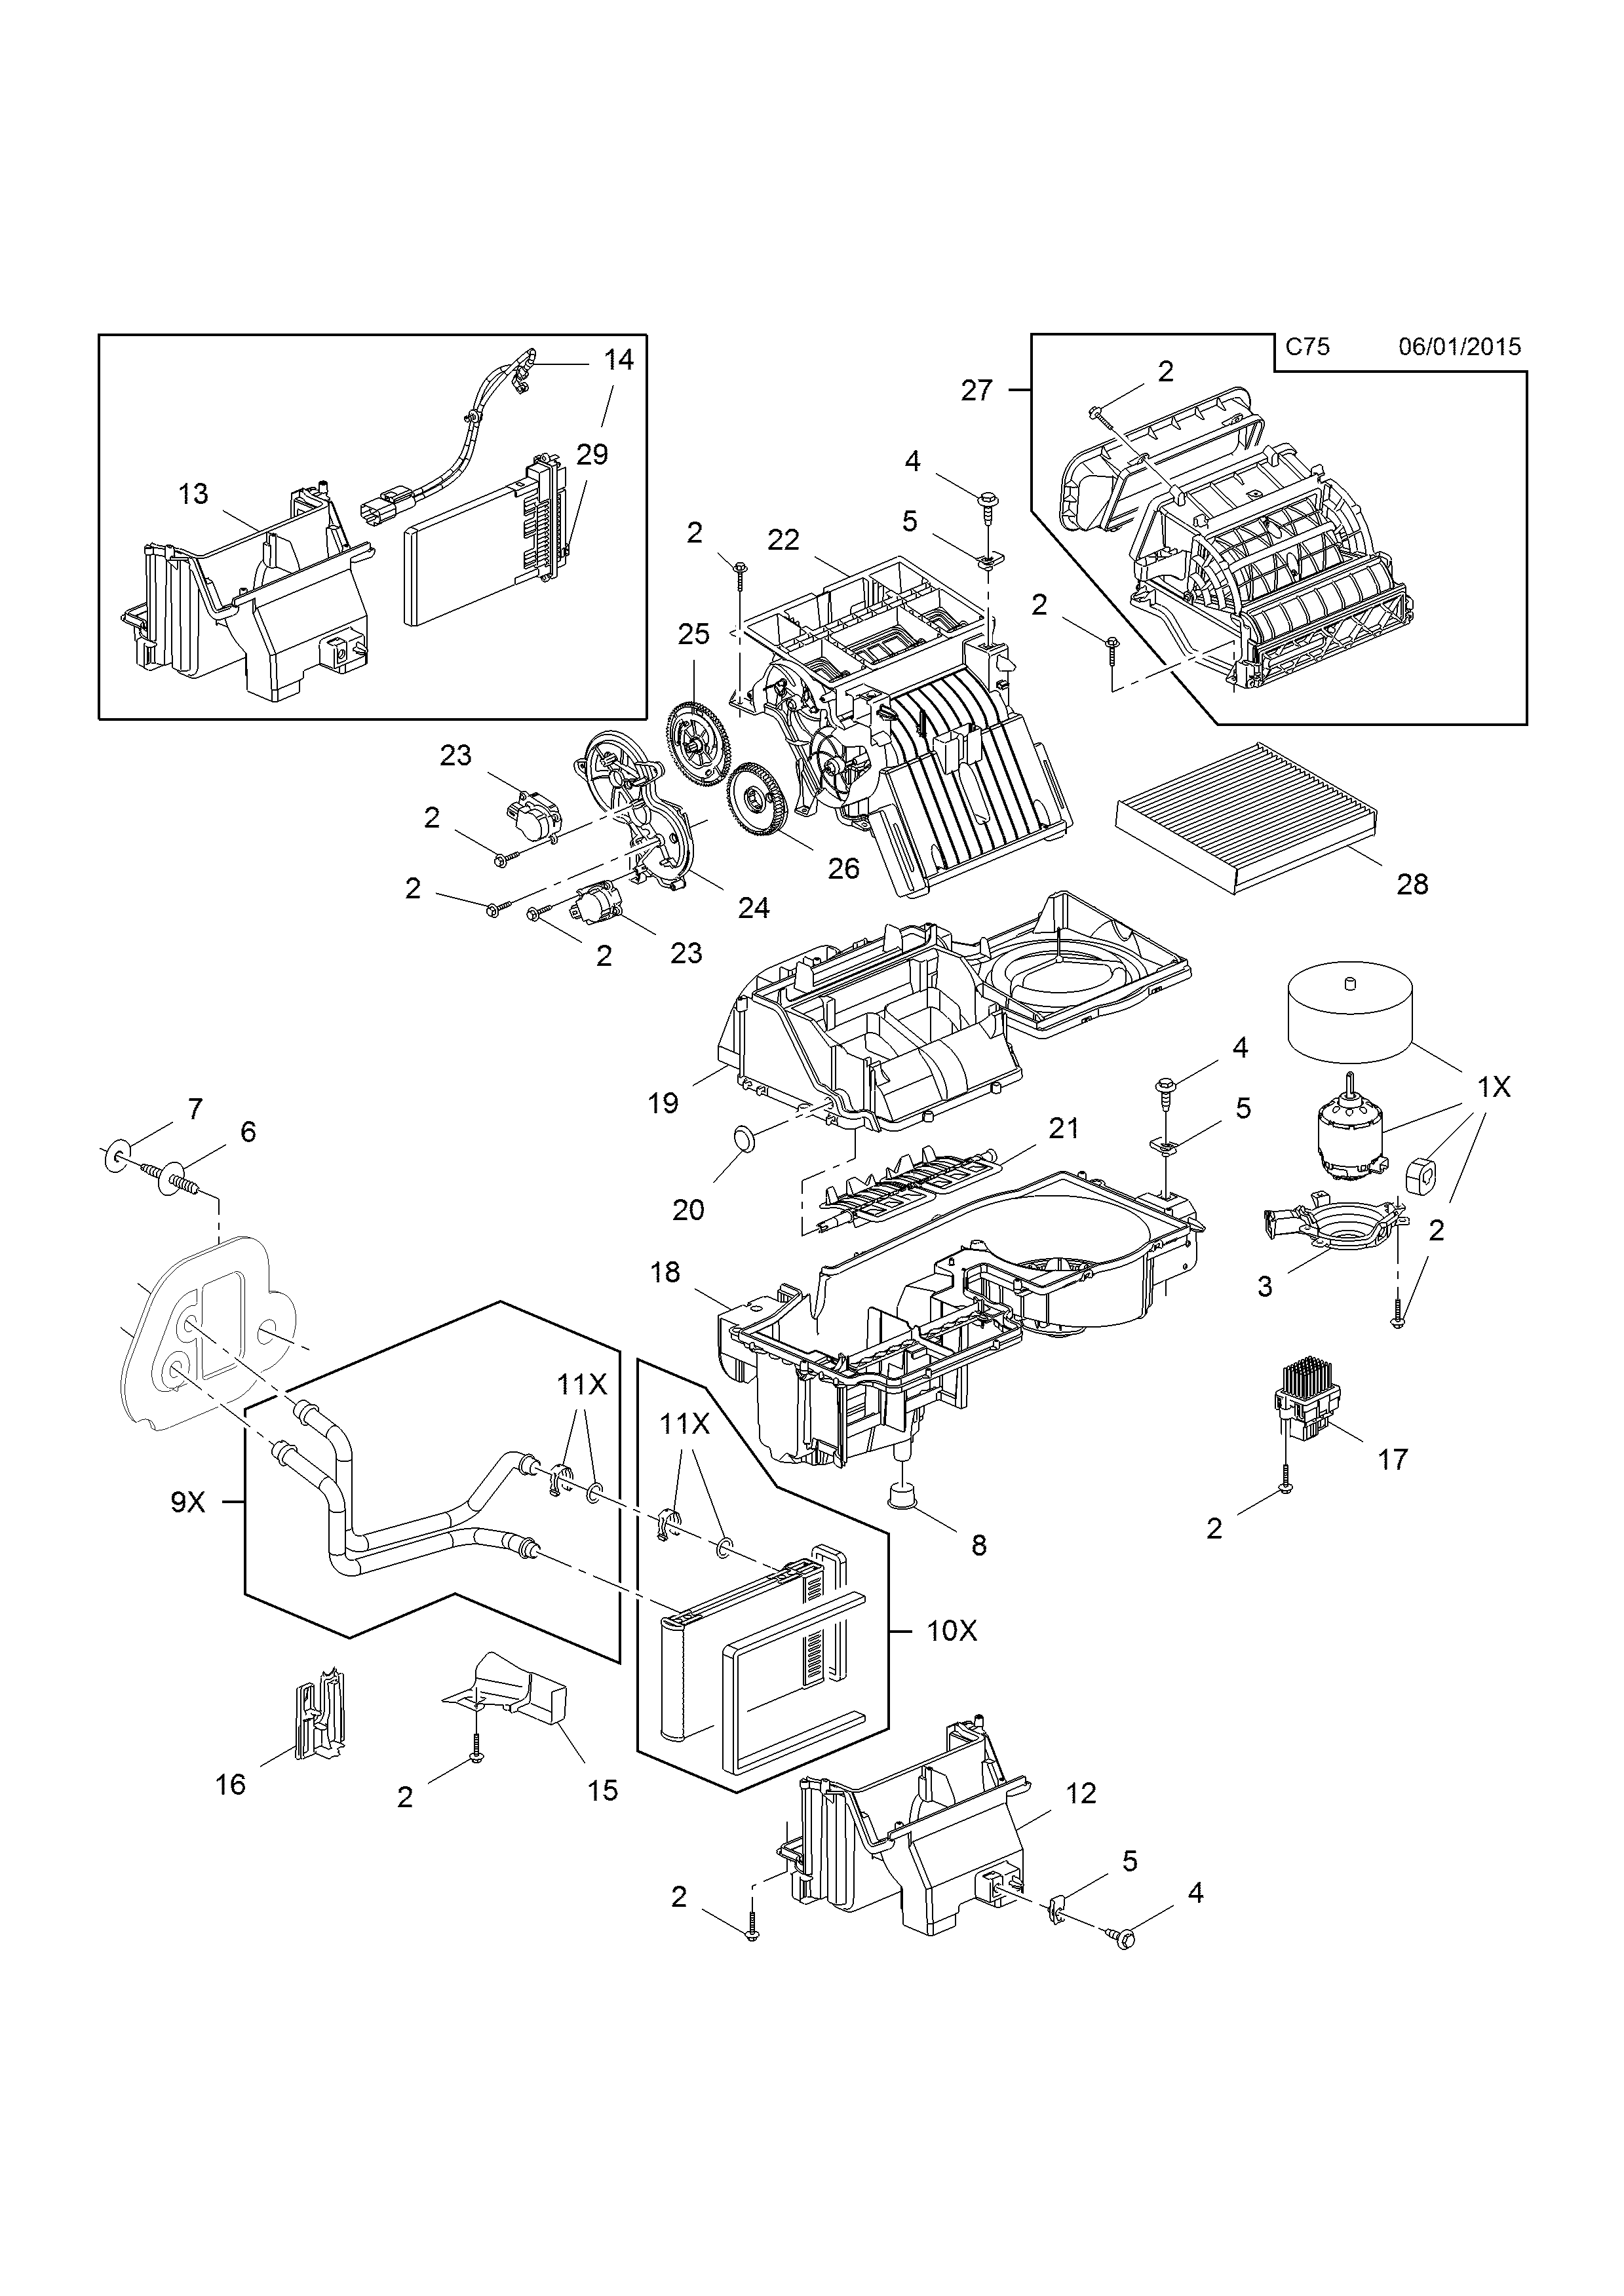 HEATER UNIT AND FAN [EXCEPT AIR CONDITIONING OR CLIMATE